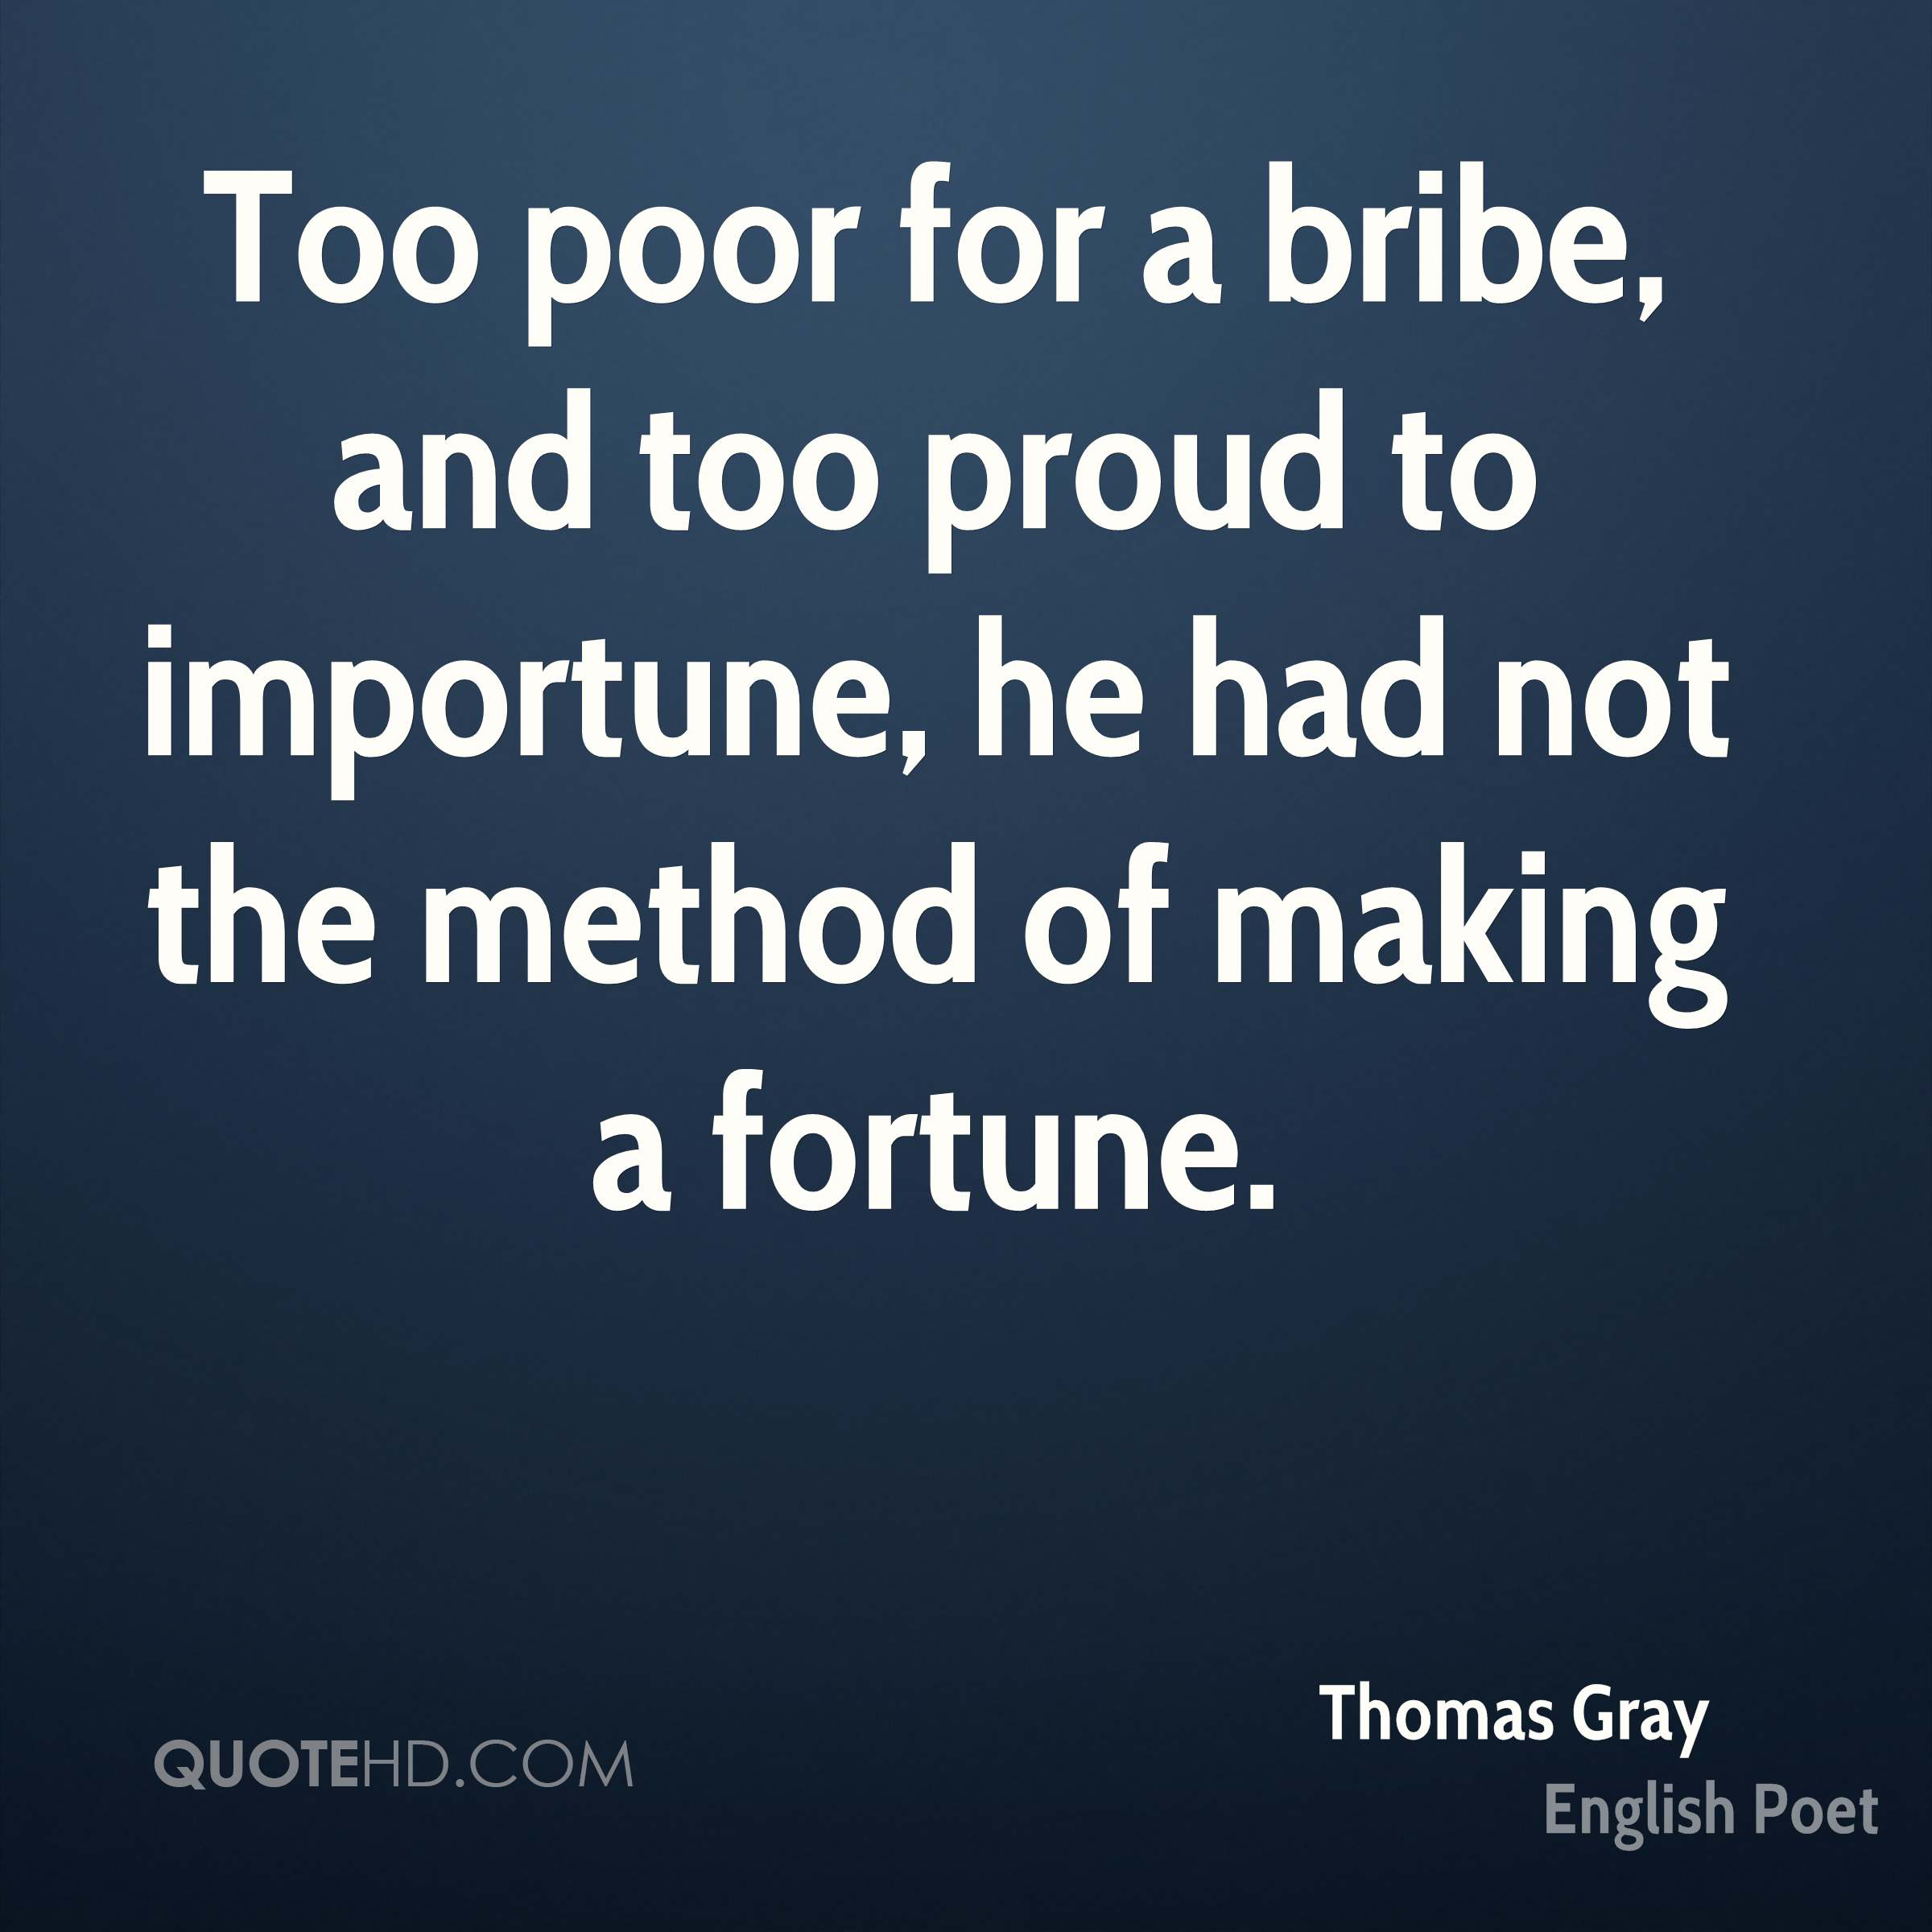 Too poor for a bribe, and too proud to importune, he had not the method of making a fortune.